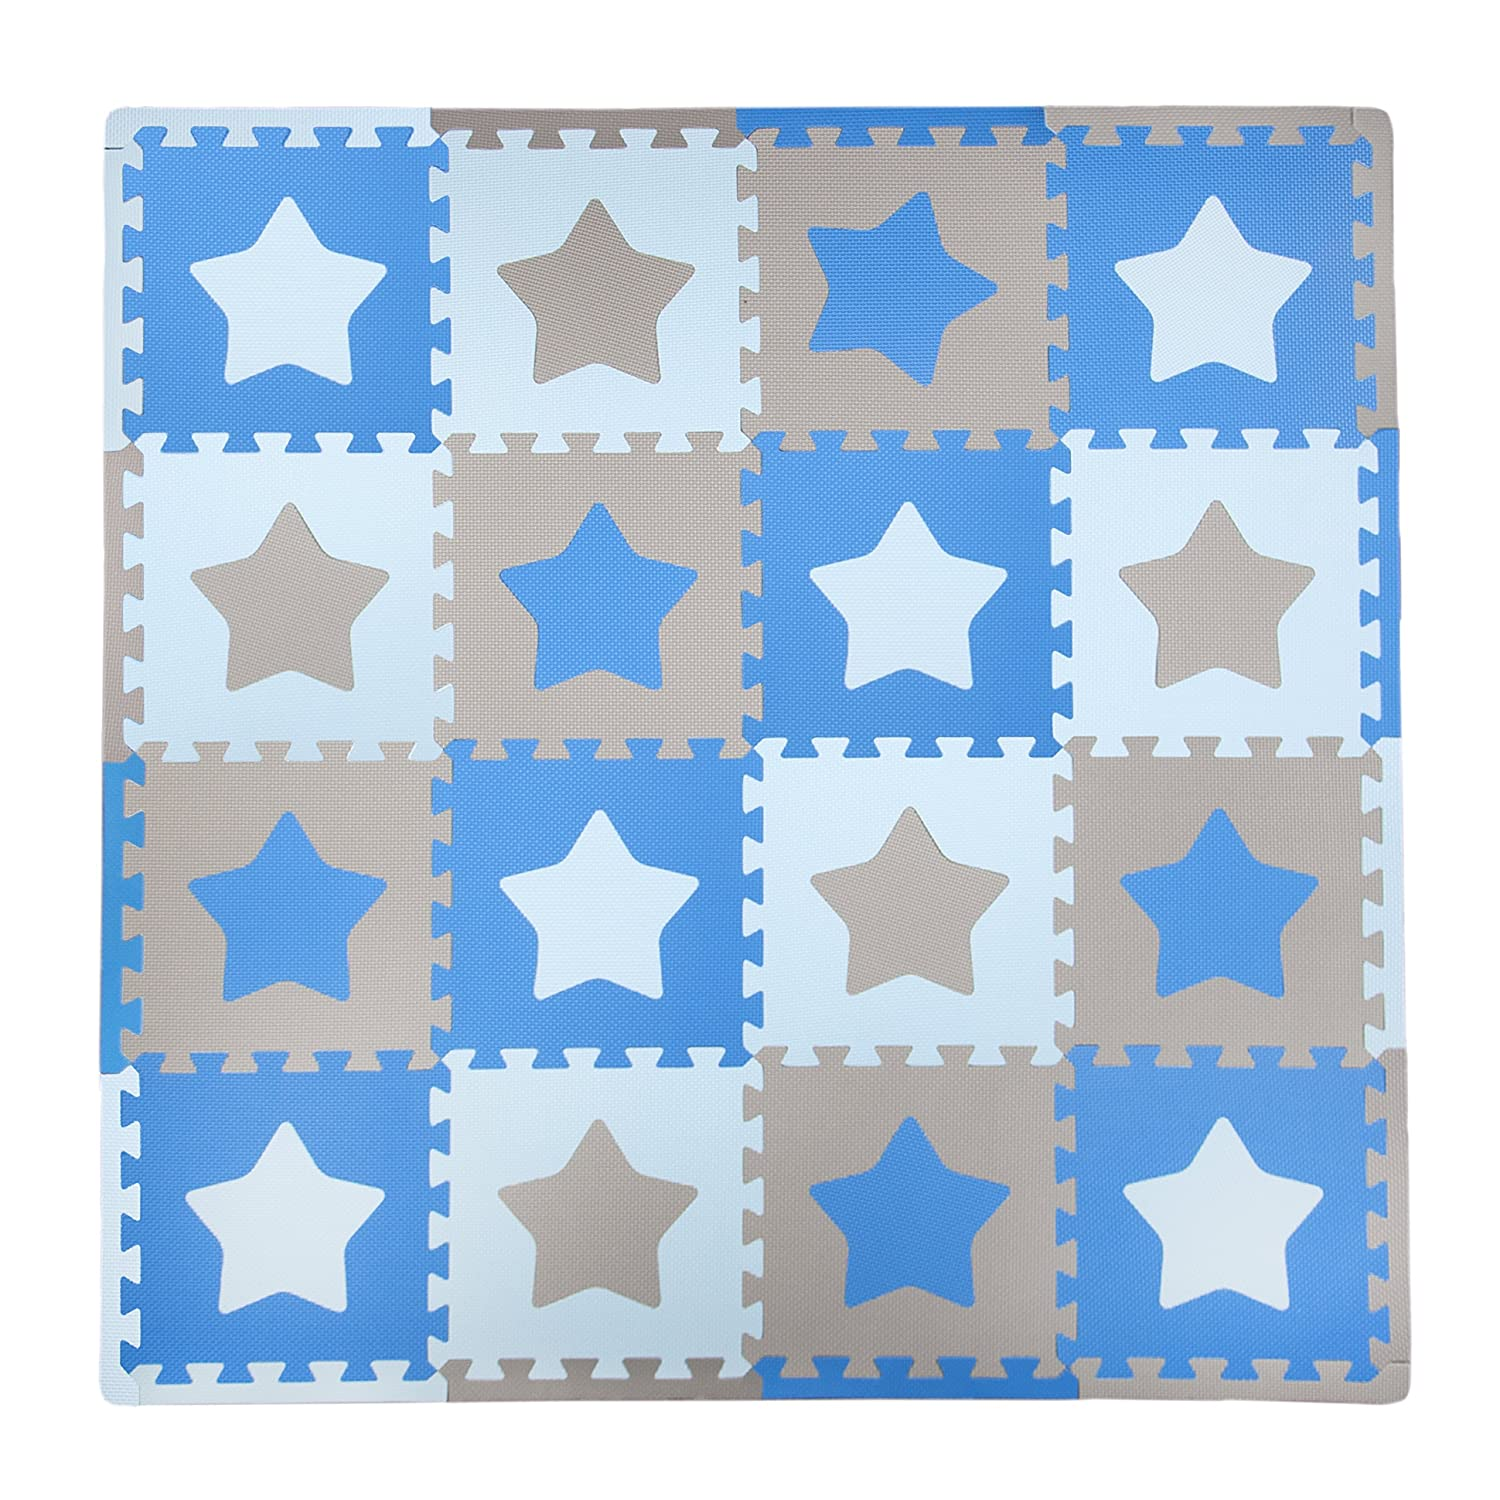 Green//Brown Tadpoles Playmat Set 16-Piece Stars